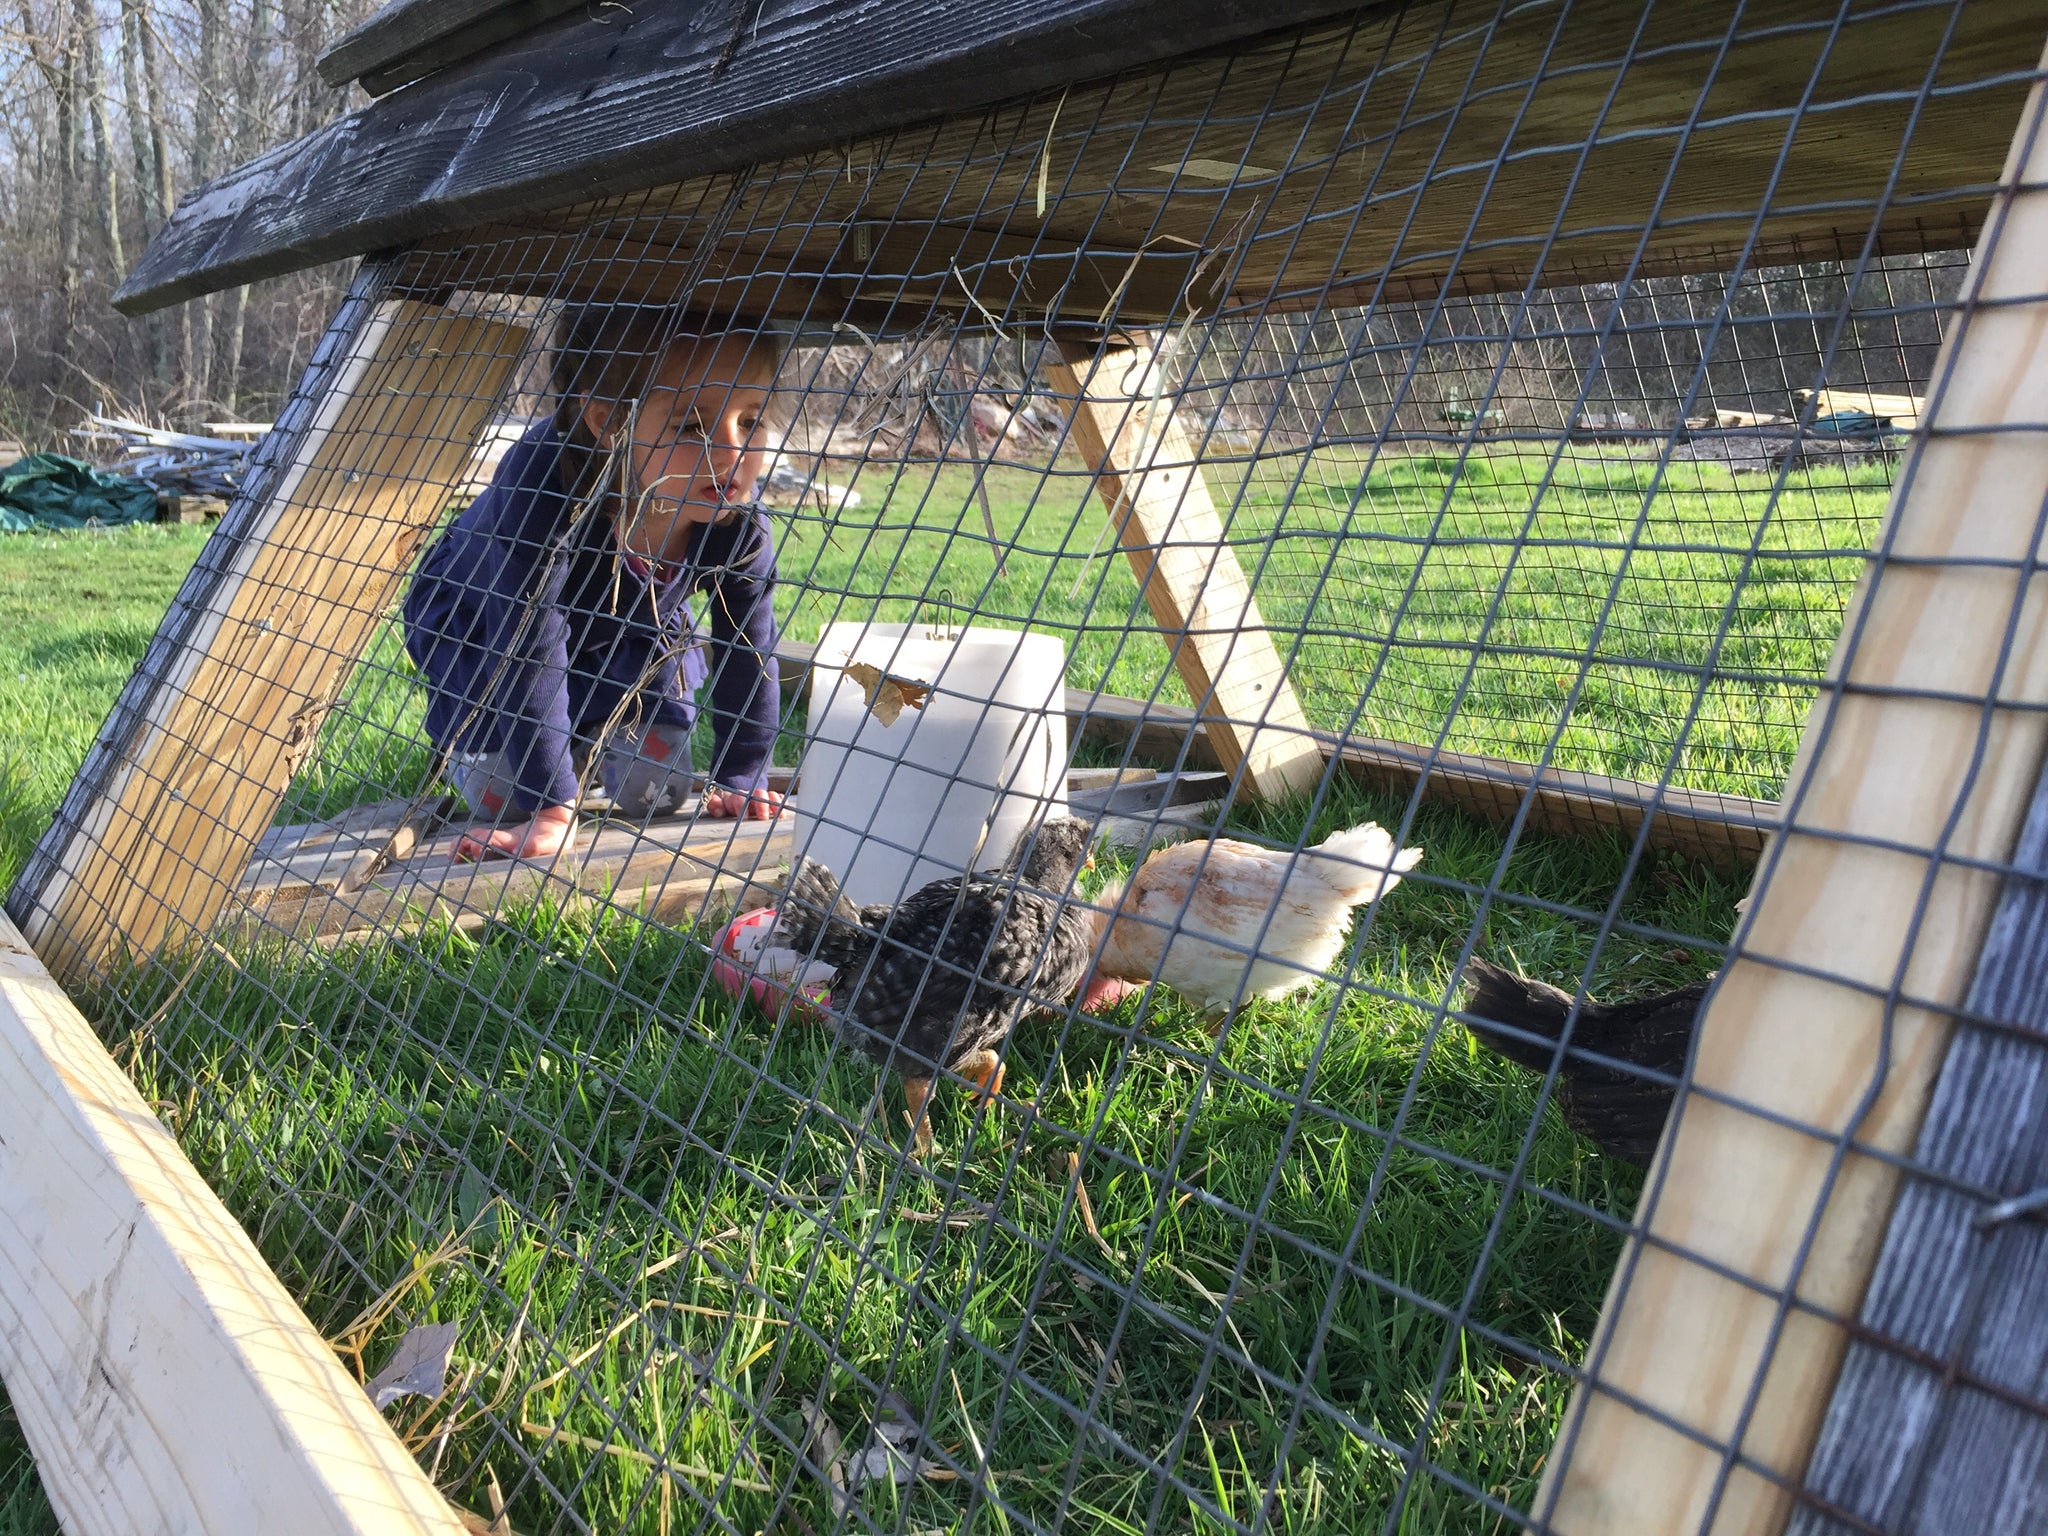 ONLINE Class! - Backyard Chickens for the Whole Family - 90 Min Intensive Online Workshop